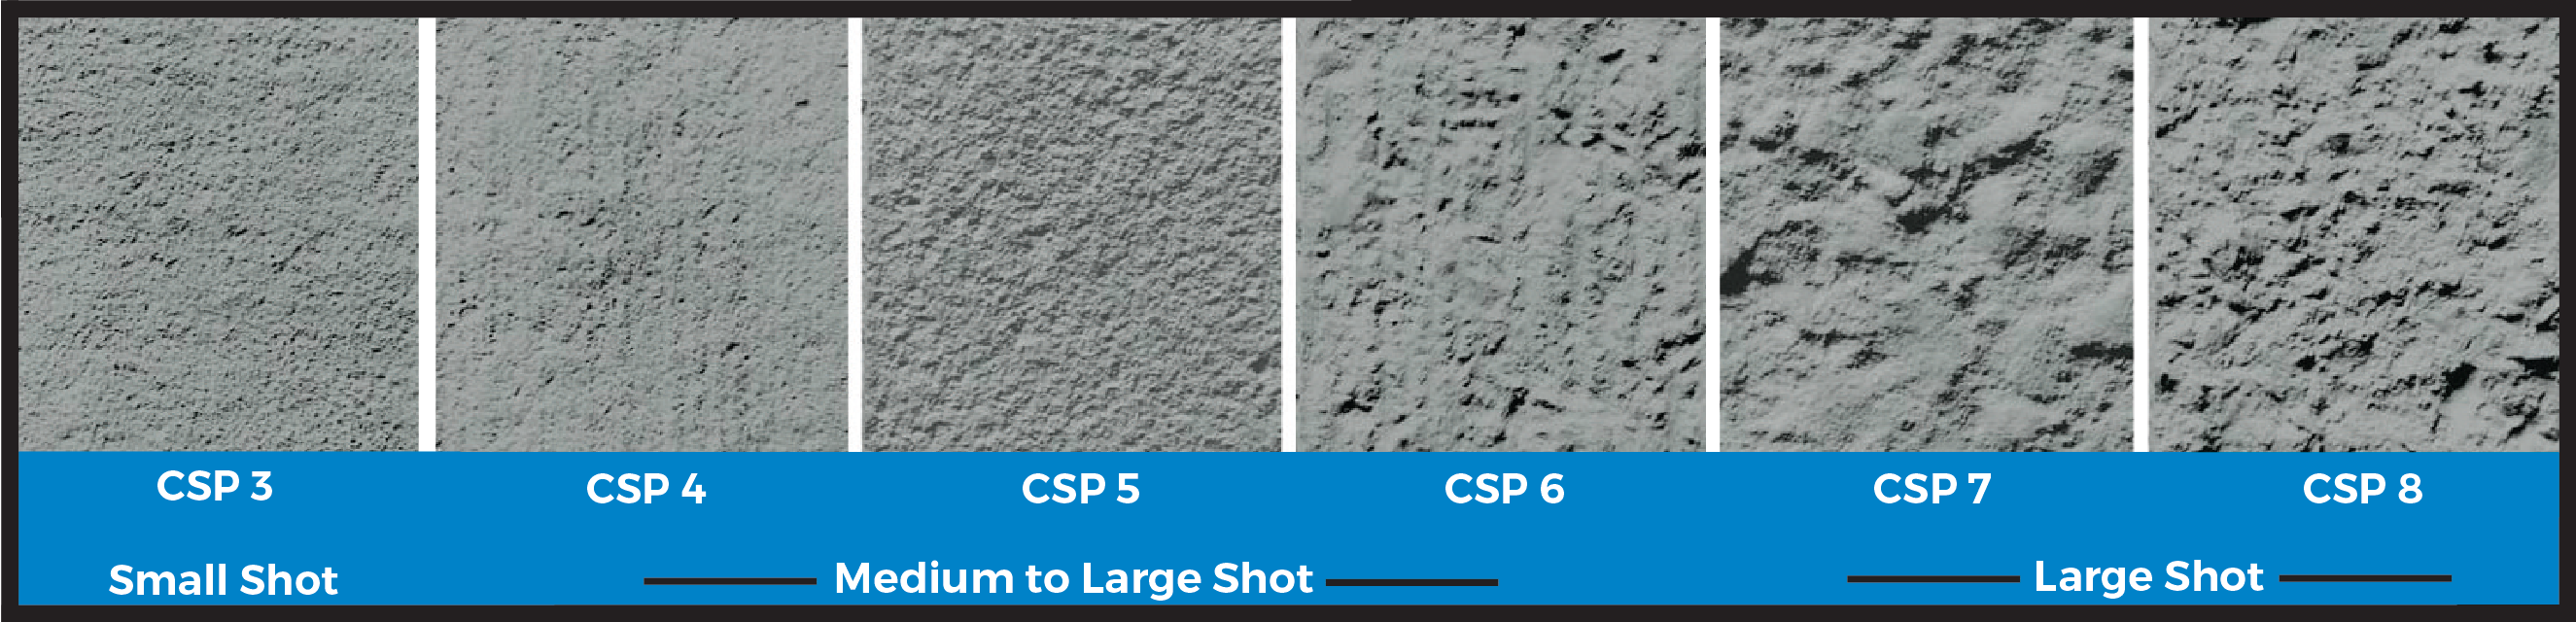 Concrete_Surface_Profile_Scale.png